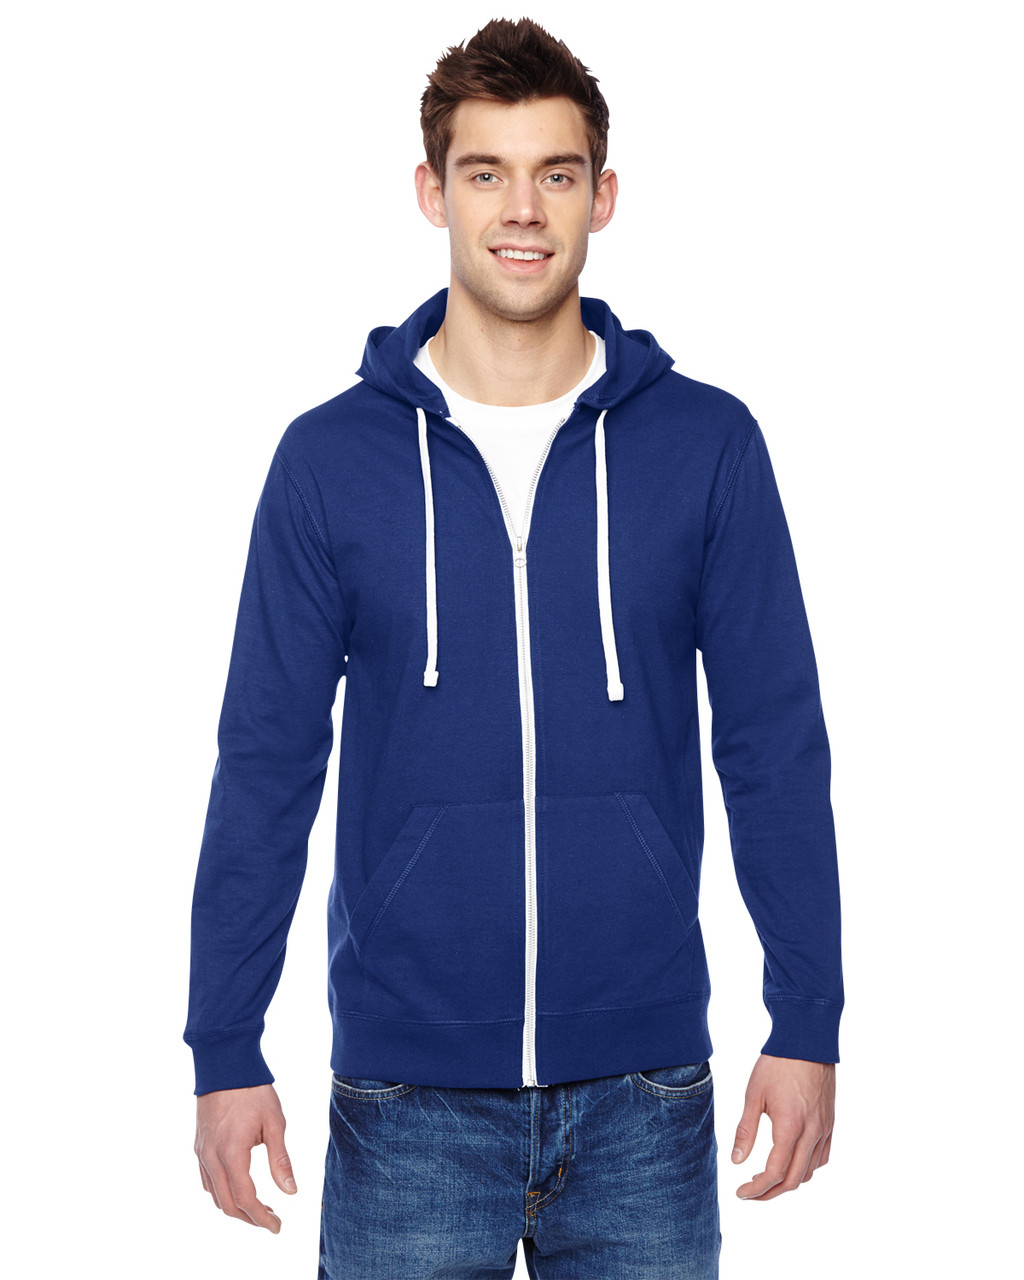 Admiral Blue - SF60R Fruit of the Loom Softspun Cotton Jersey Full-Zip Hoodie | Blankclothing.ca